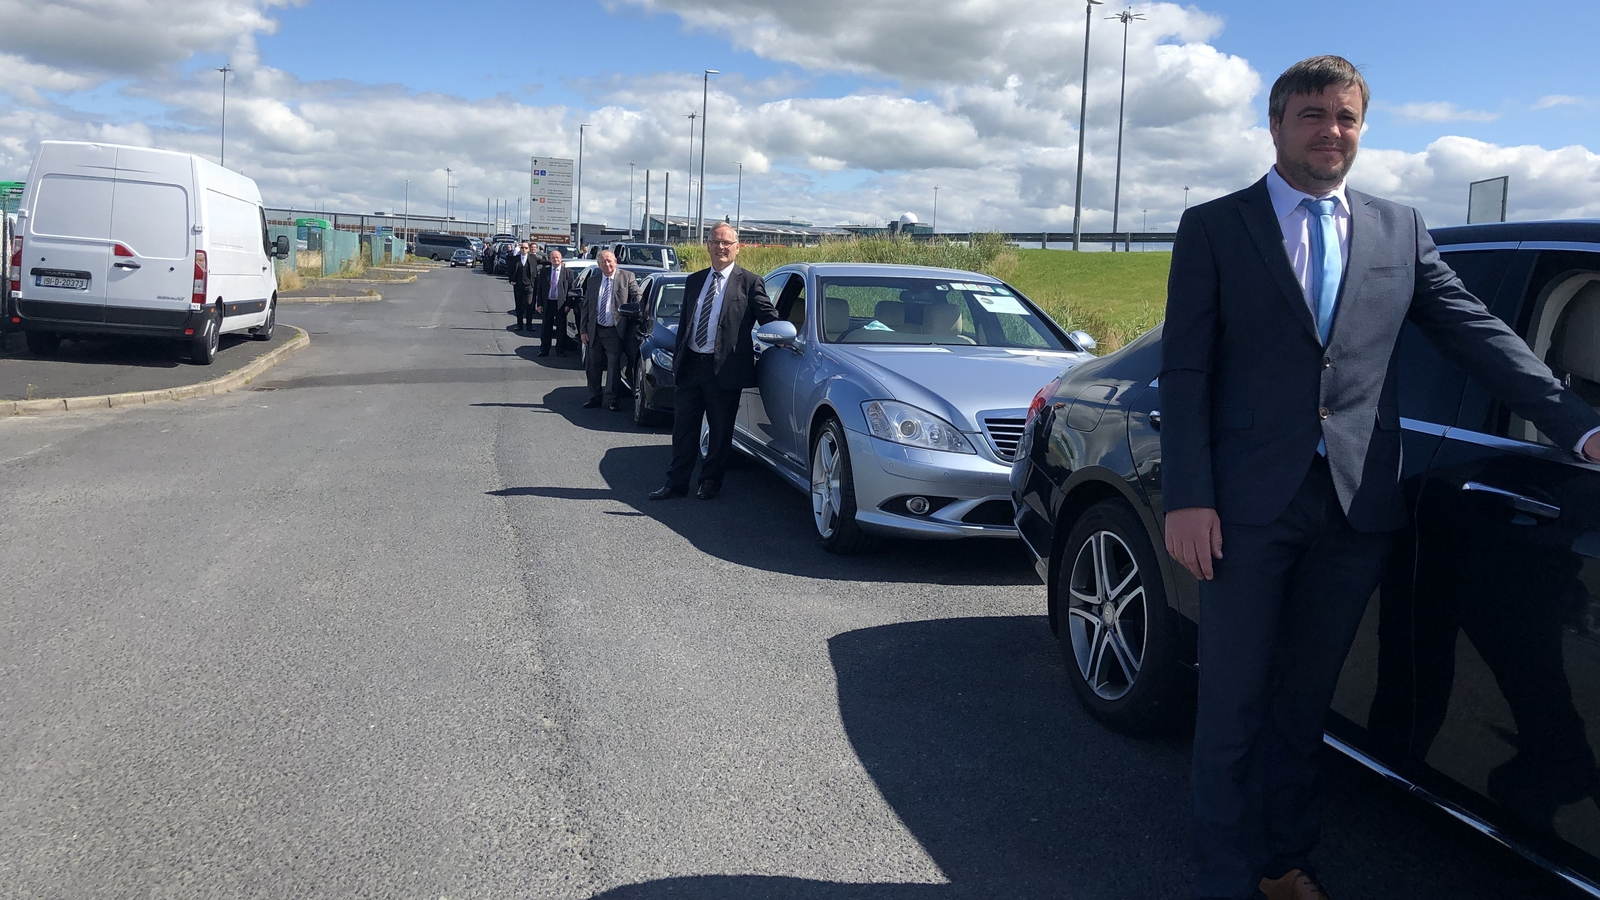 Limousine, chauffeur sector feel impact of Covid crisis